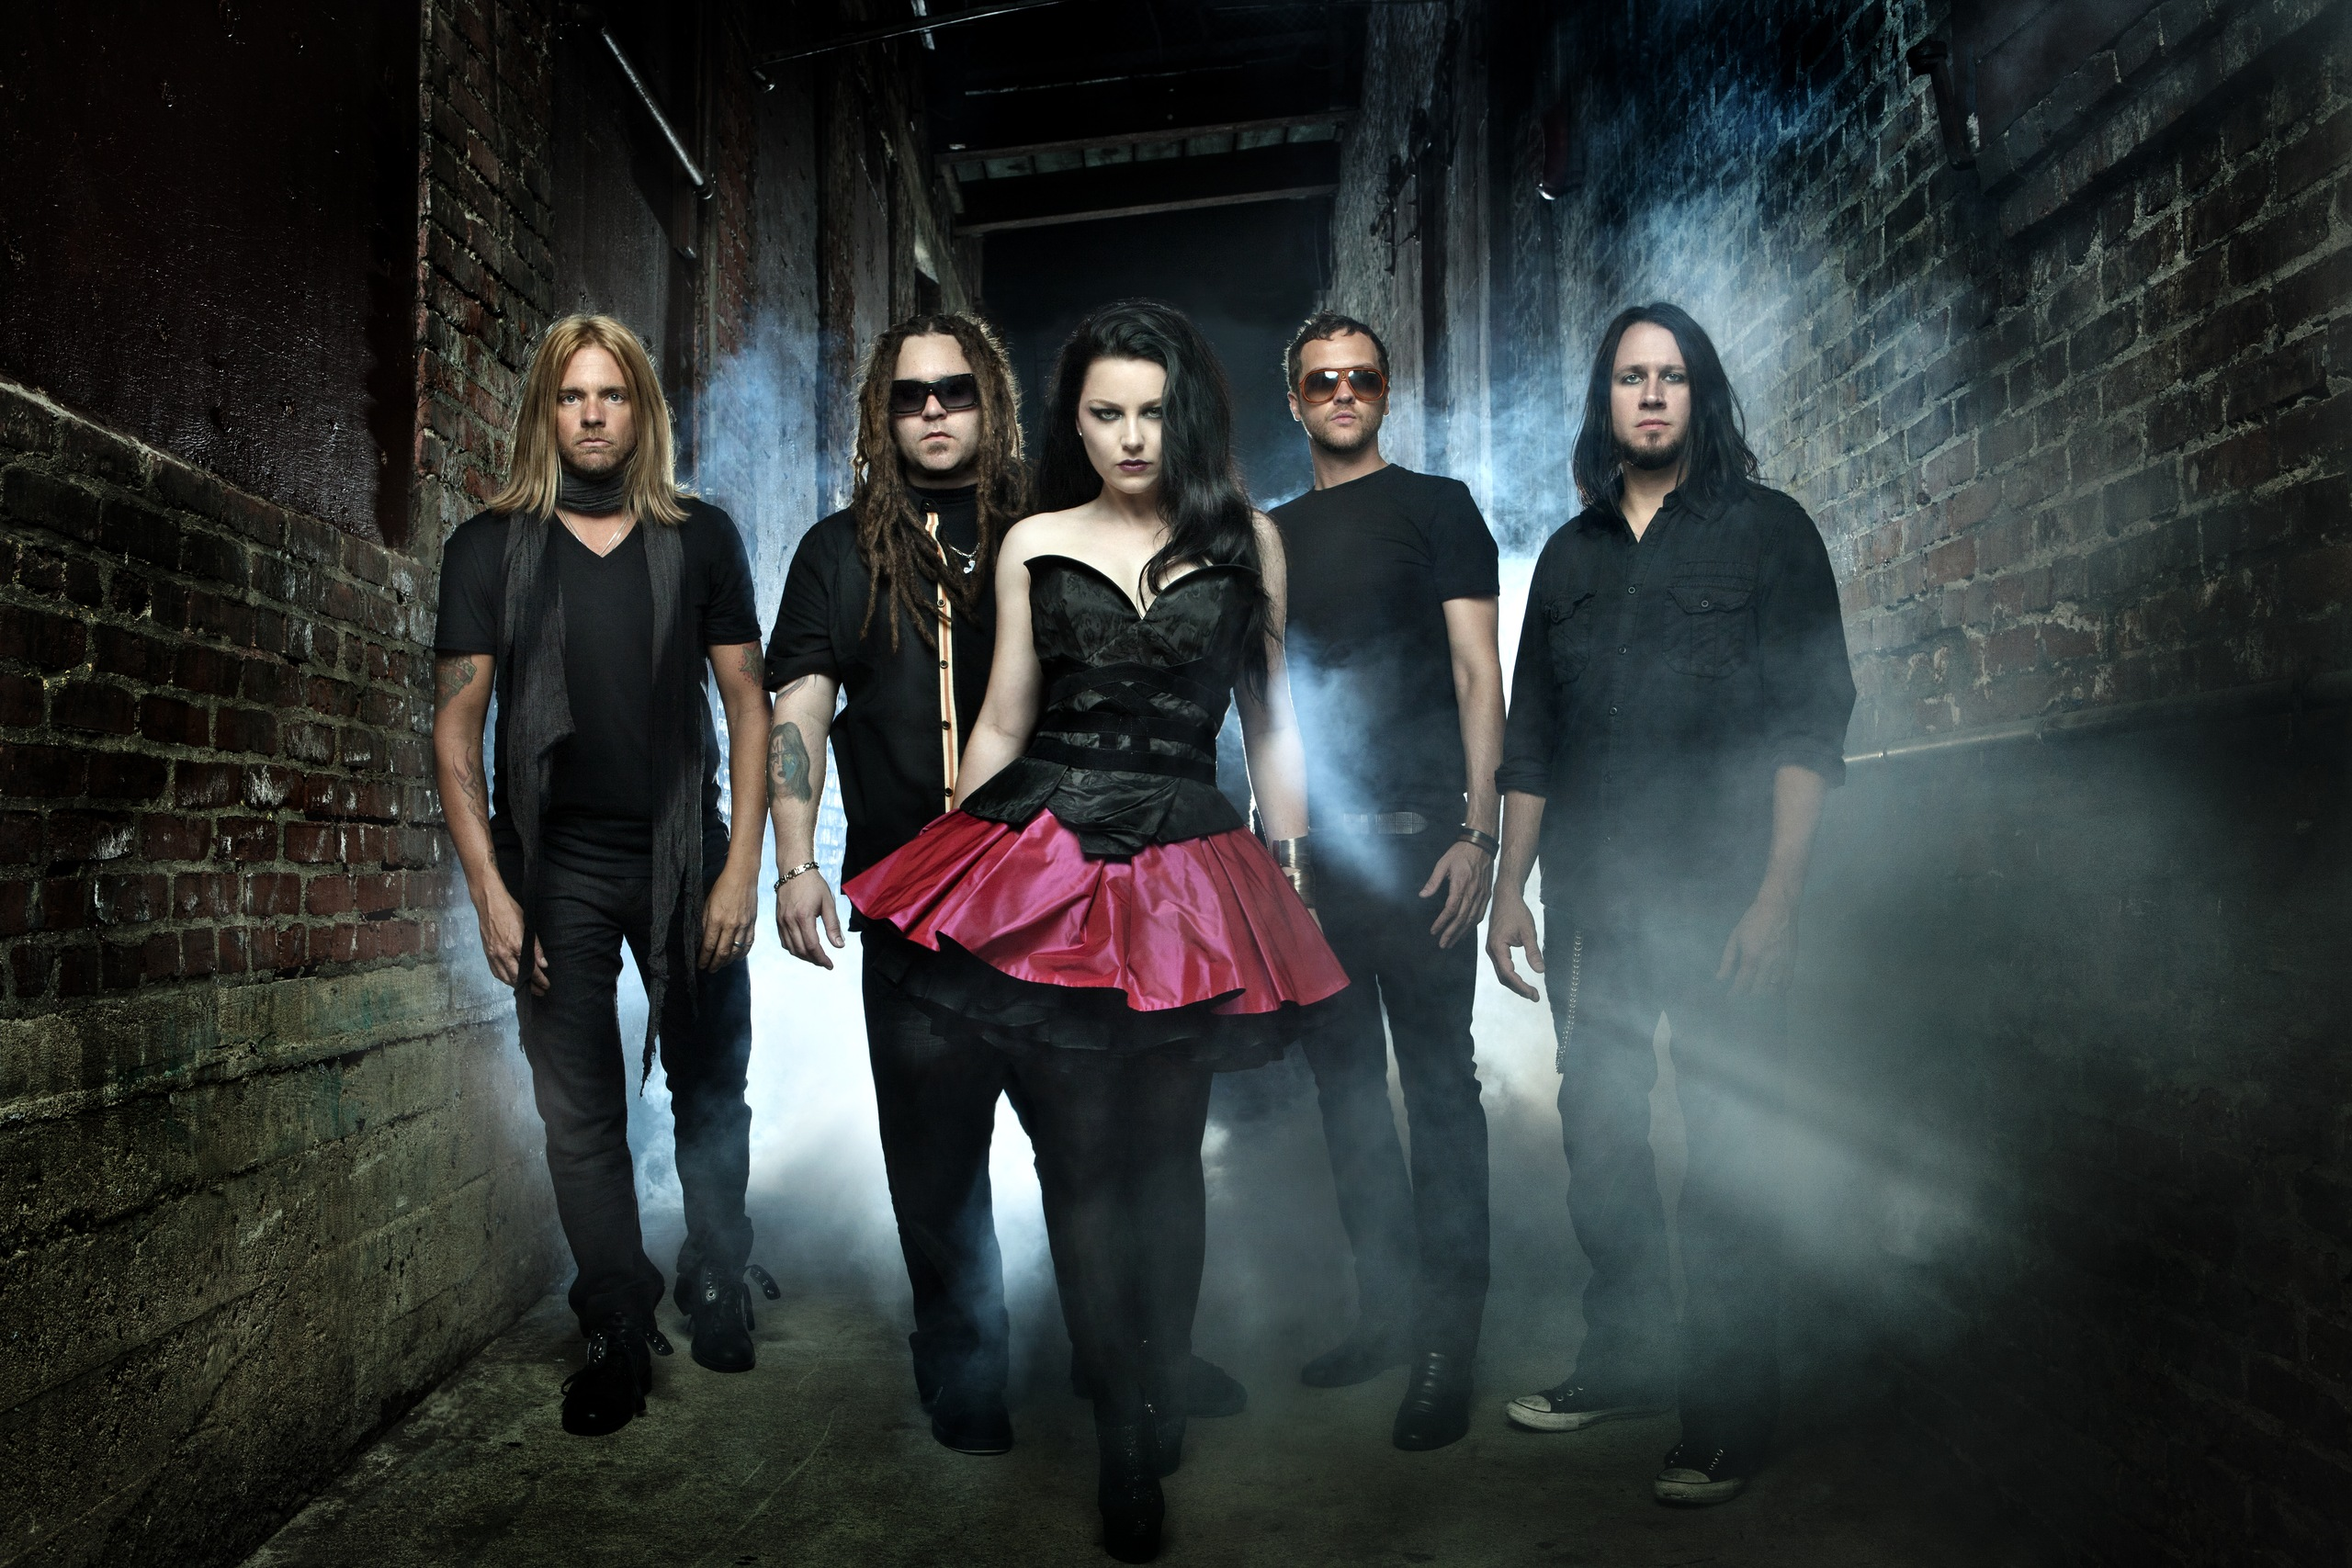 http://evanescence-rus.ru/images/upload/w_bdd4039e.jpg